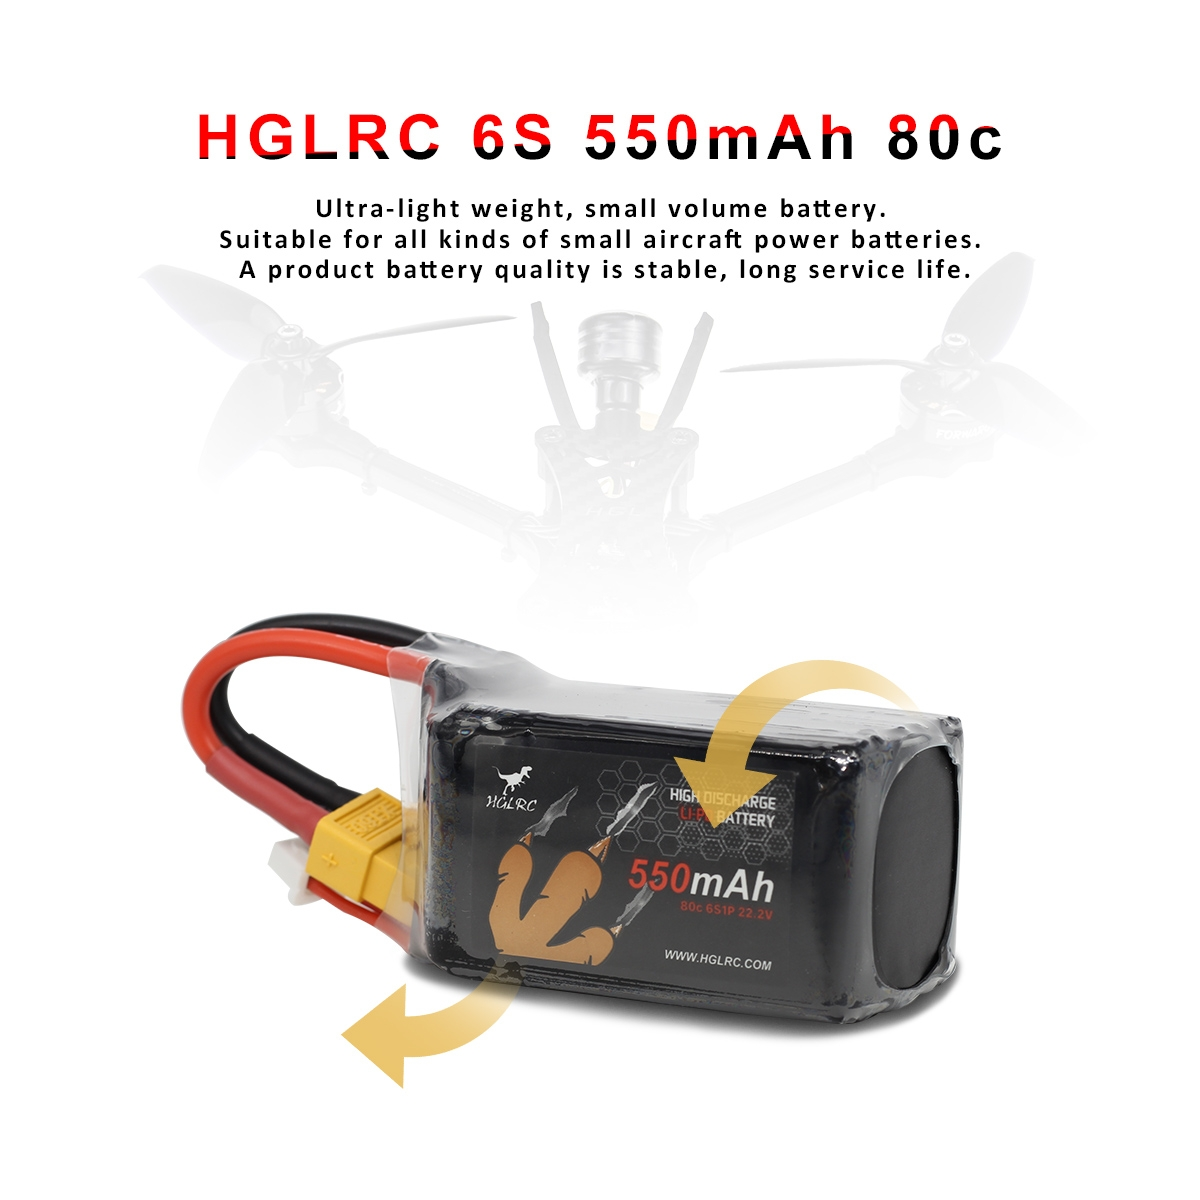 HGLRC 6S 22.2V 550mAh 80C LiPo Battery XT60 with 2x Battery Strap 75*32*50mm 115.1g for RC Drone FPV Racing